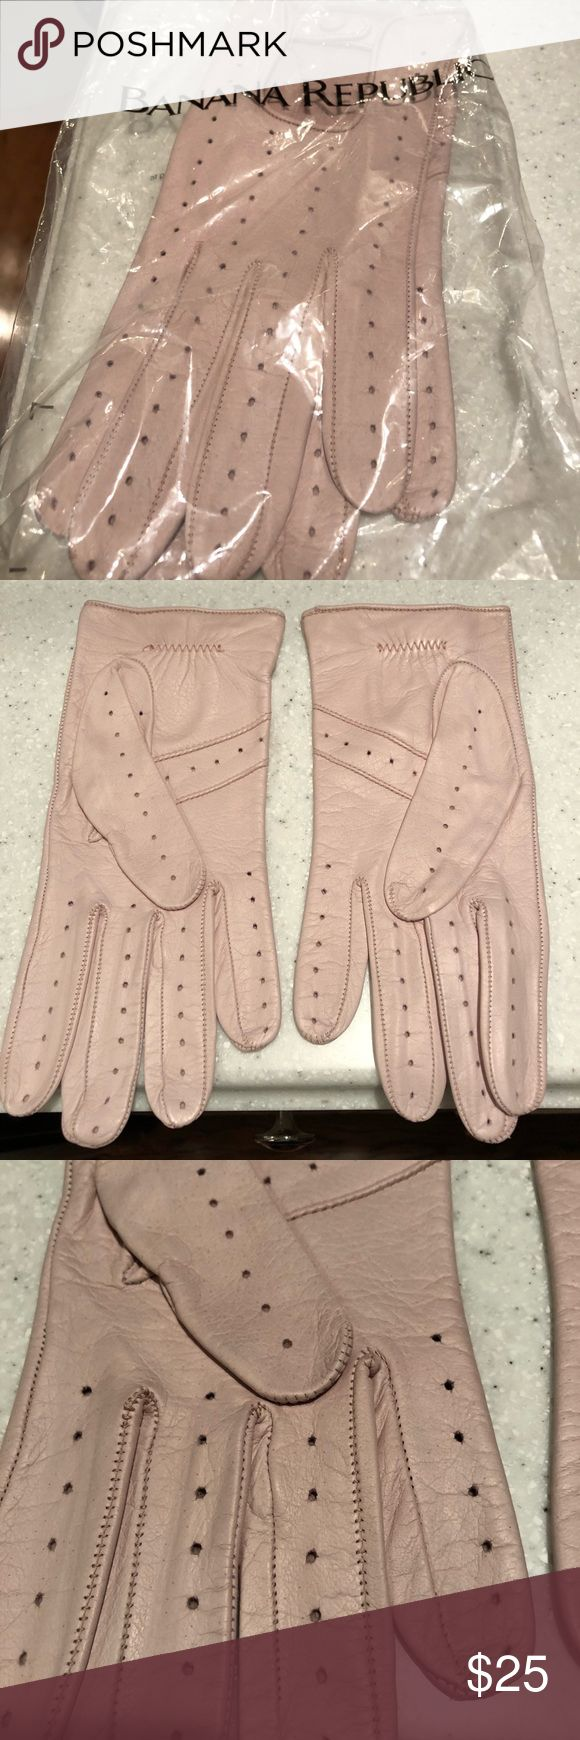 NWT Banana Republic pink leather driving gloves NWT Banana Republic pink leather driving gloves. Size M. Looks white in the last photo but I think it was the lighting or the angle. They're definitely pink. Banana Republic Accessories Gloves & Mittens